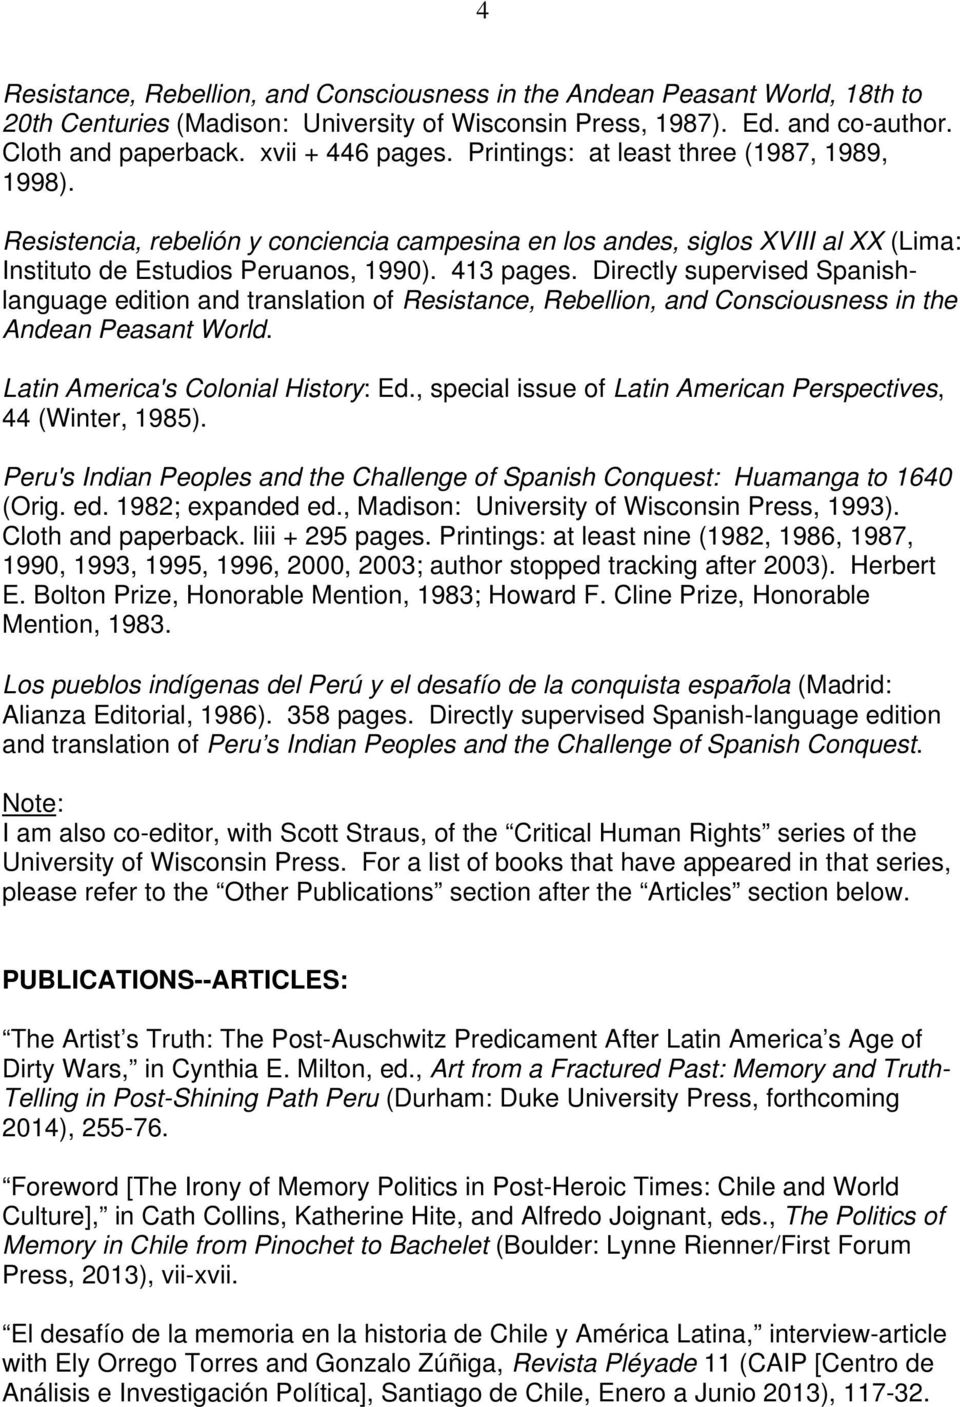 Directly supervised Spanishlanguage edition and translation of Resistance, Rebellion, and Consciousness in the Andean Peasant World. Latin America's Colonial History: Ed.